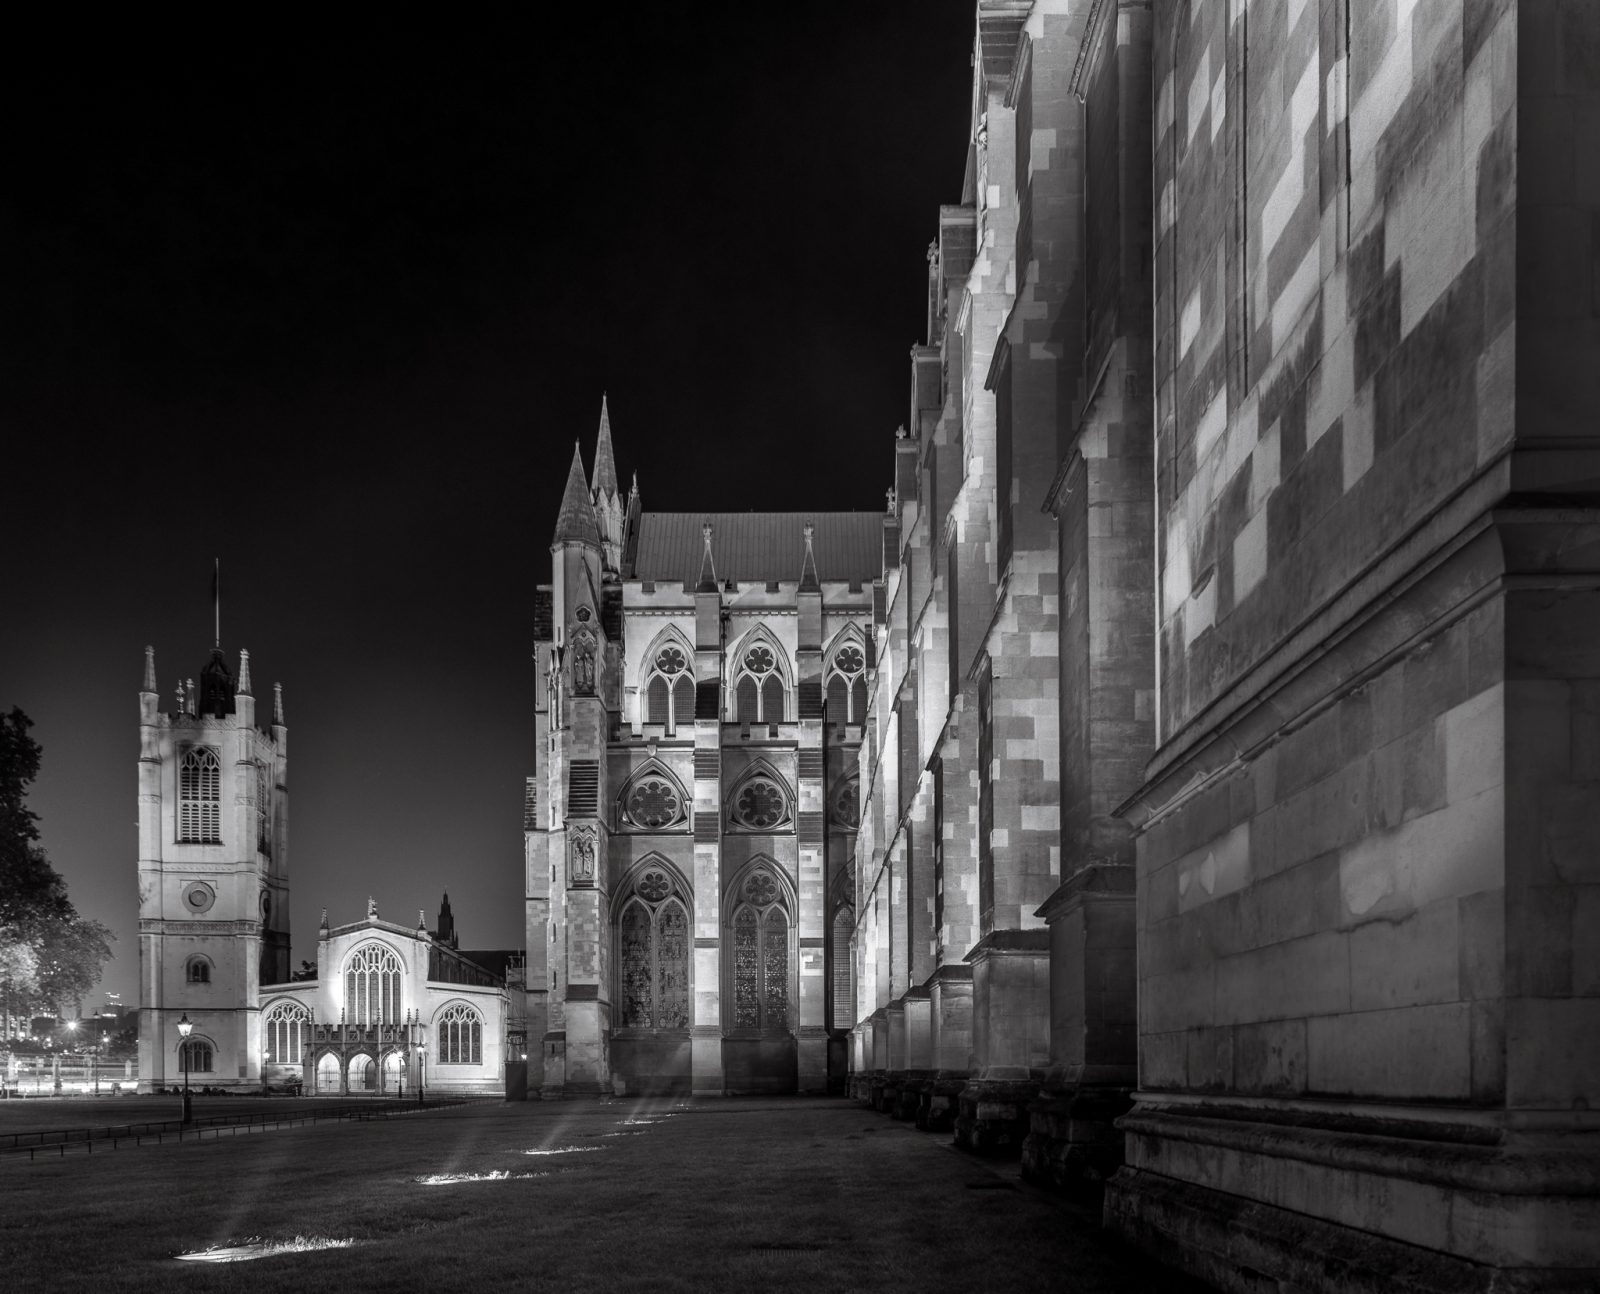 Westminster Abbey & St Margaret's Church